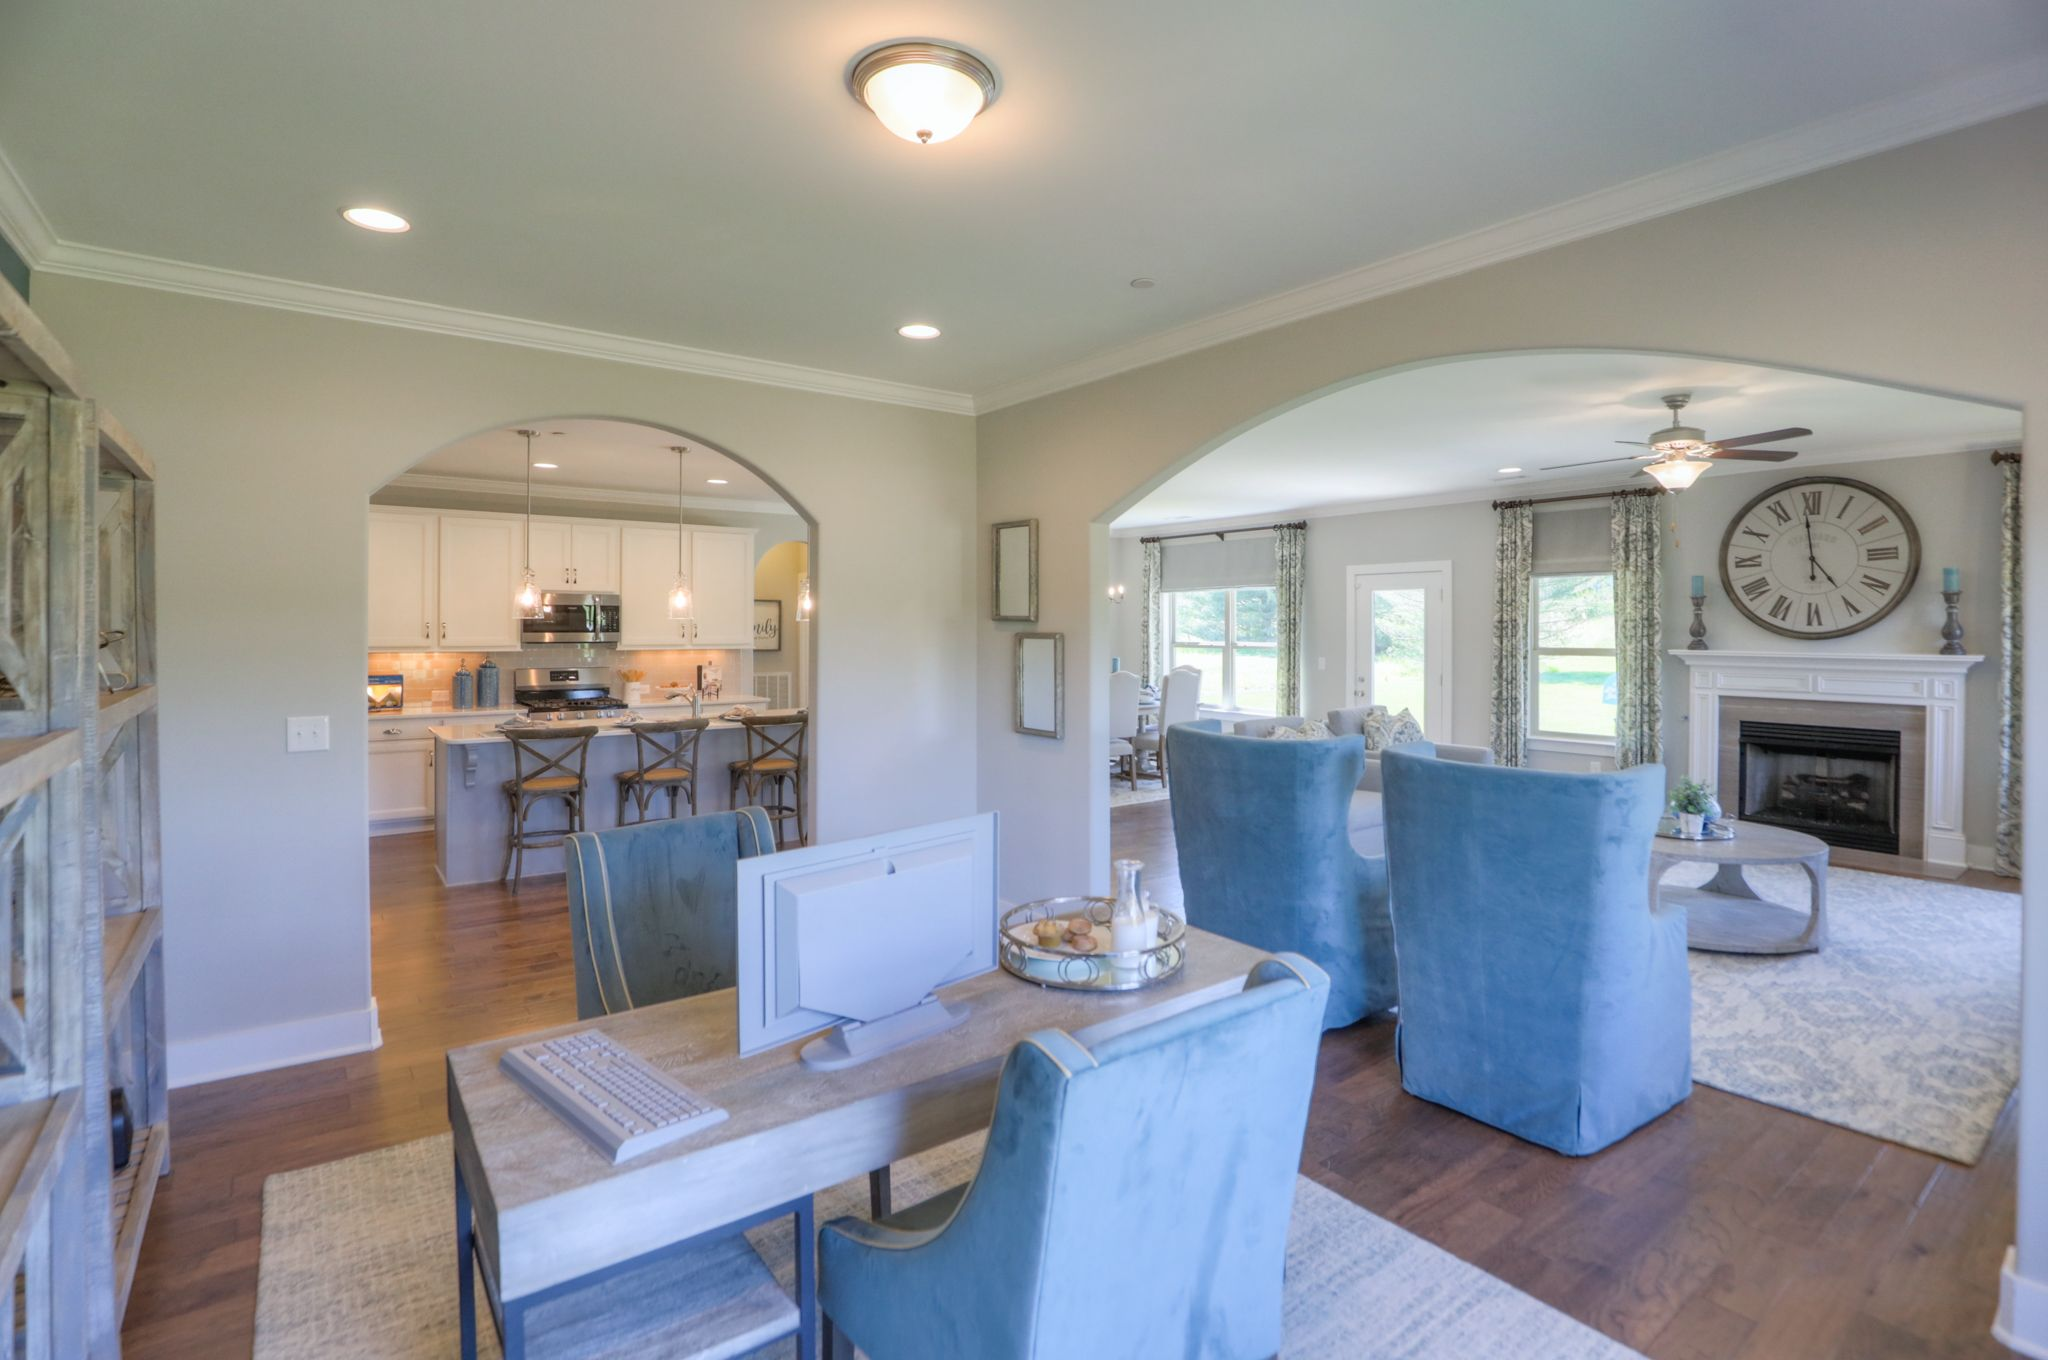 Living Area featured in The Lexington By Goodall Homes in Owensboro, KY